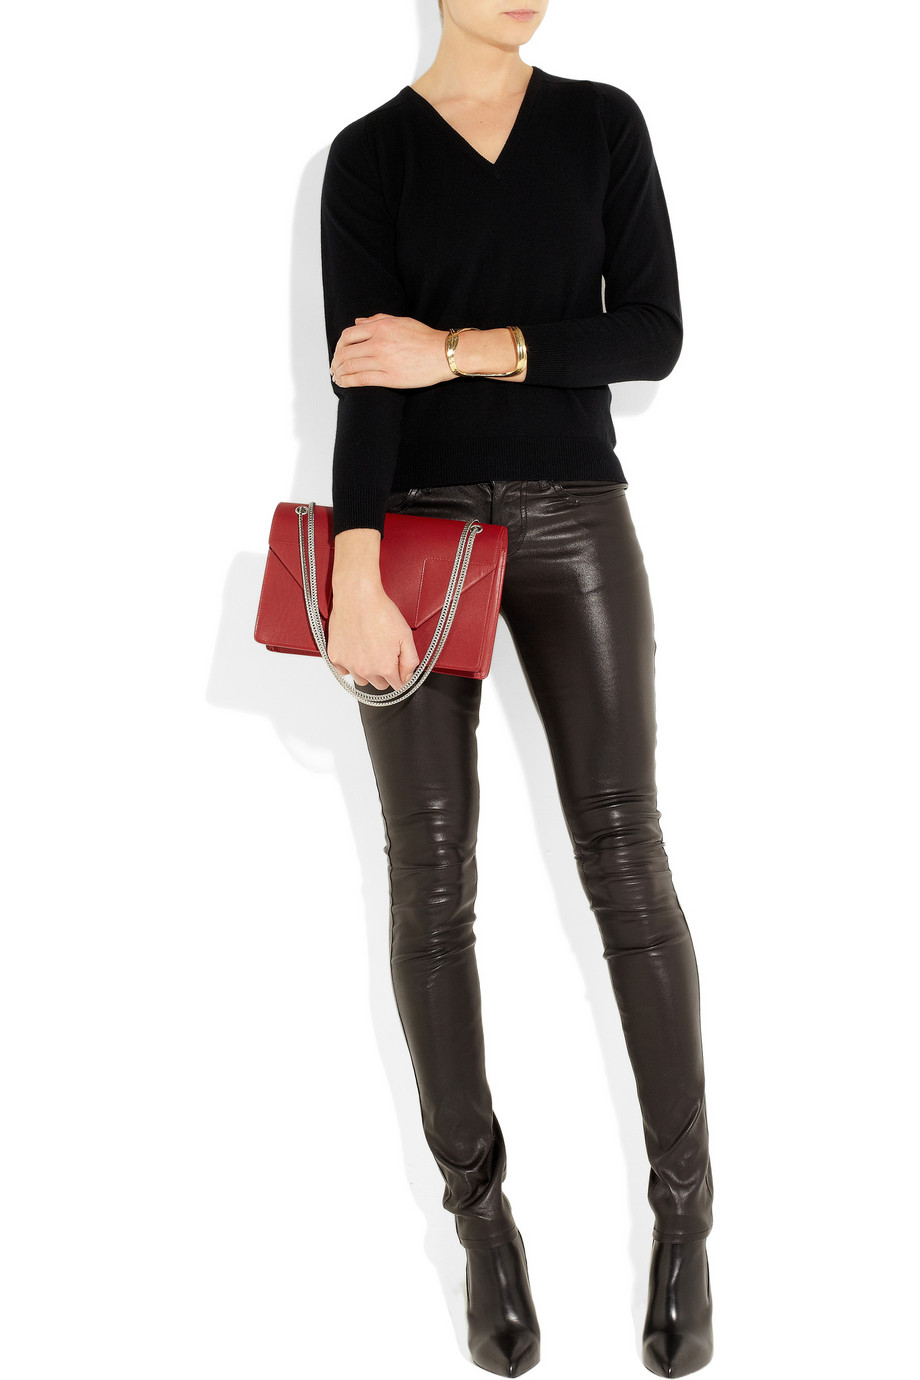 y saint laurent borse - classic small betty bag in black suede and leather